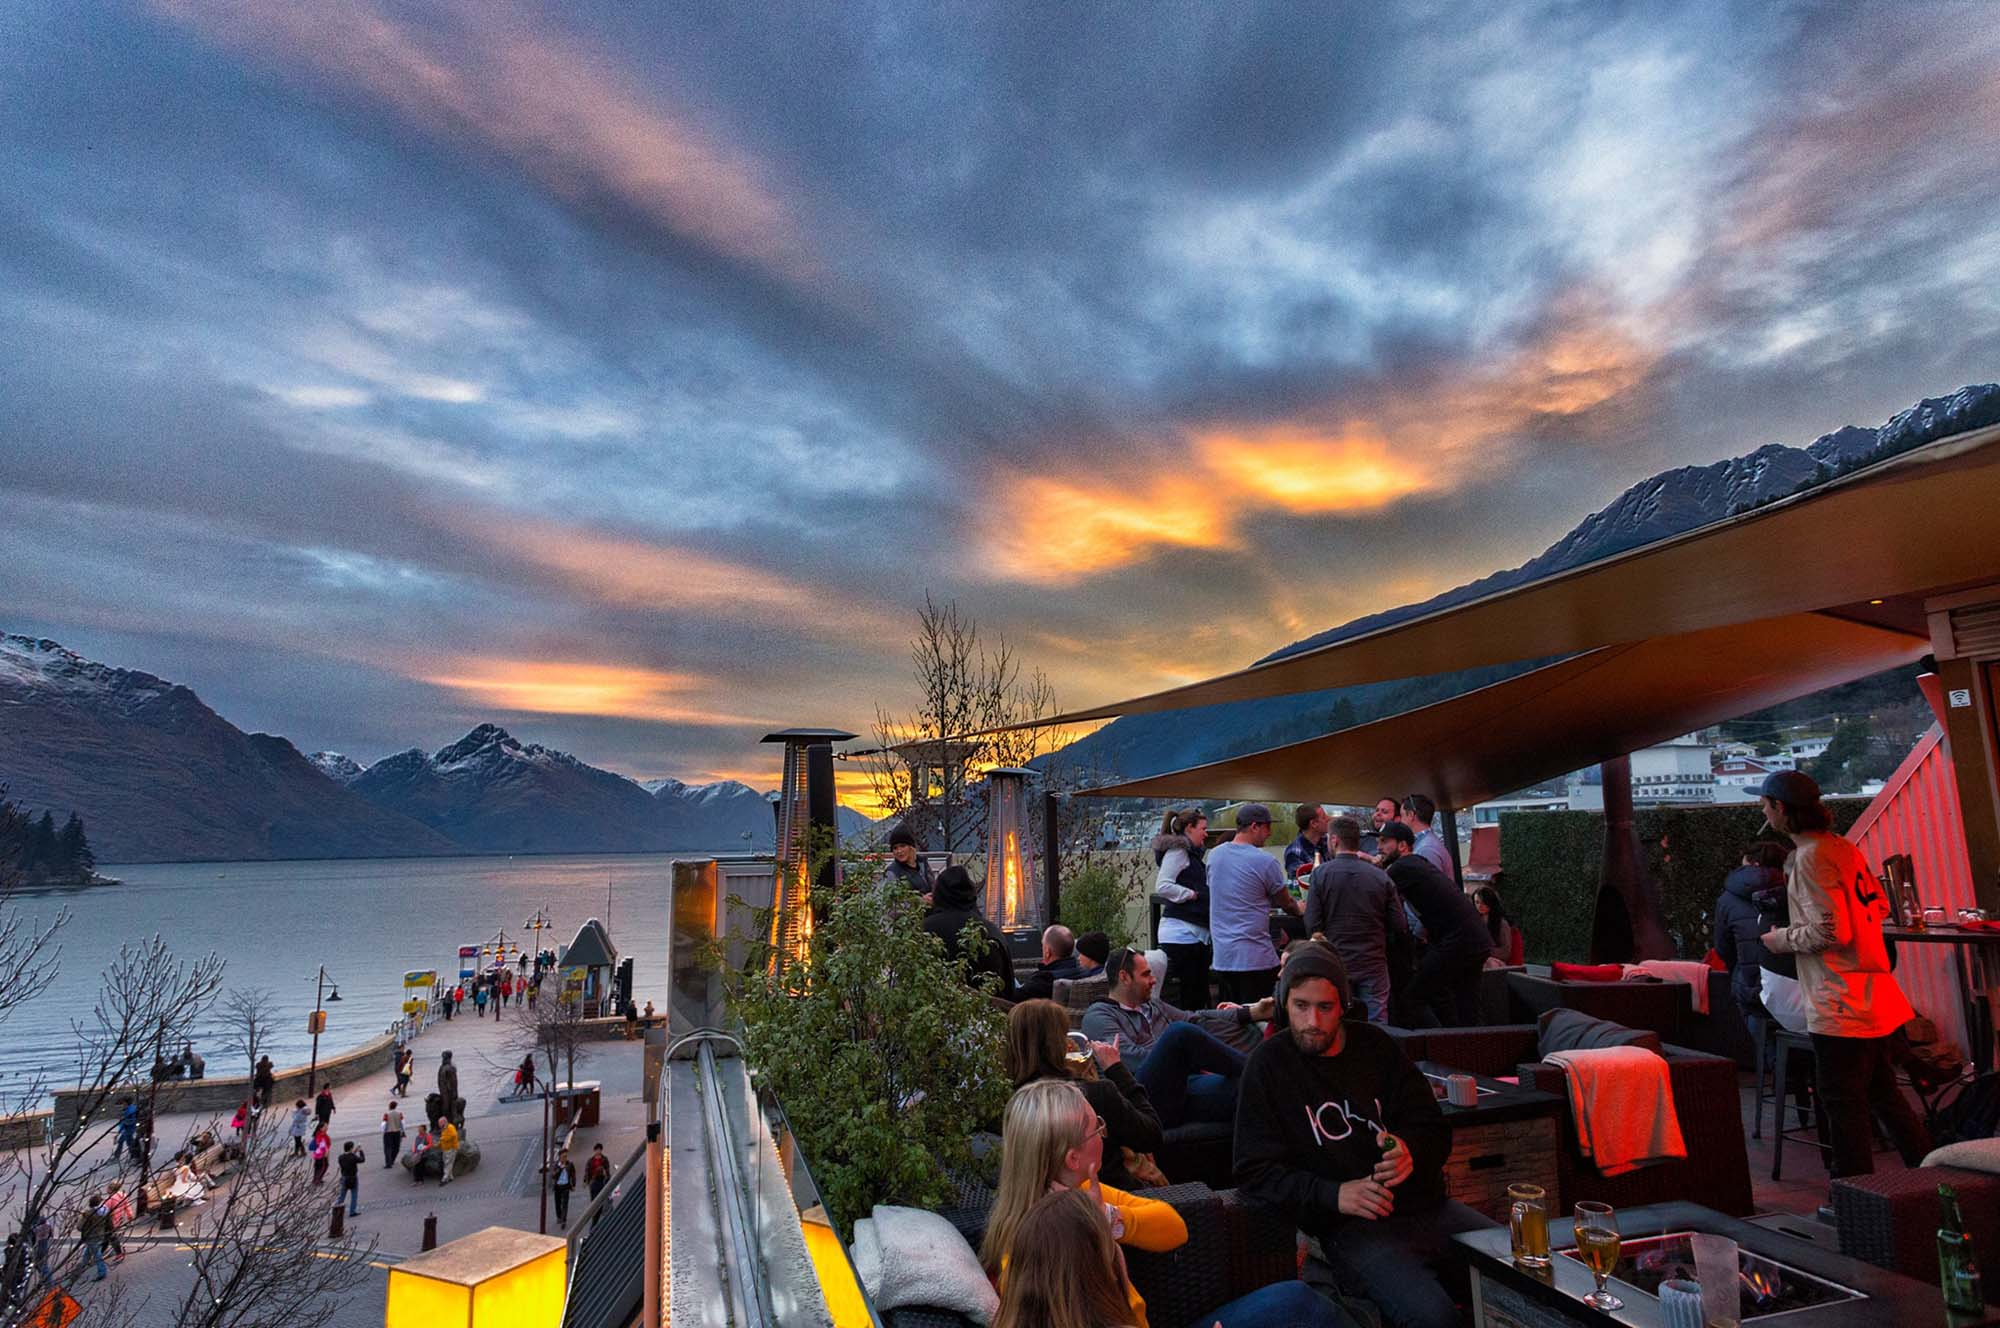 Sundeck - The perfect place to sit around the fire and watch the sun go down!